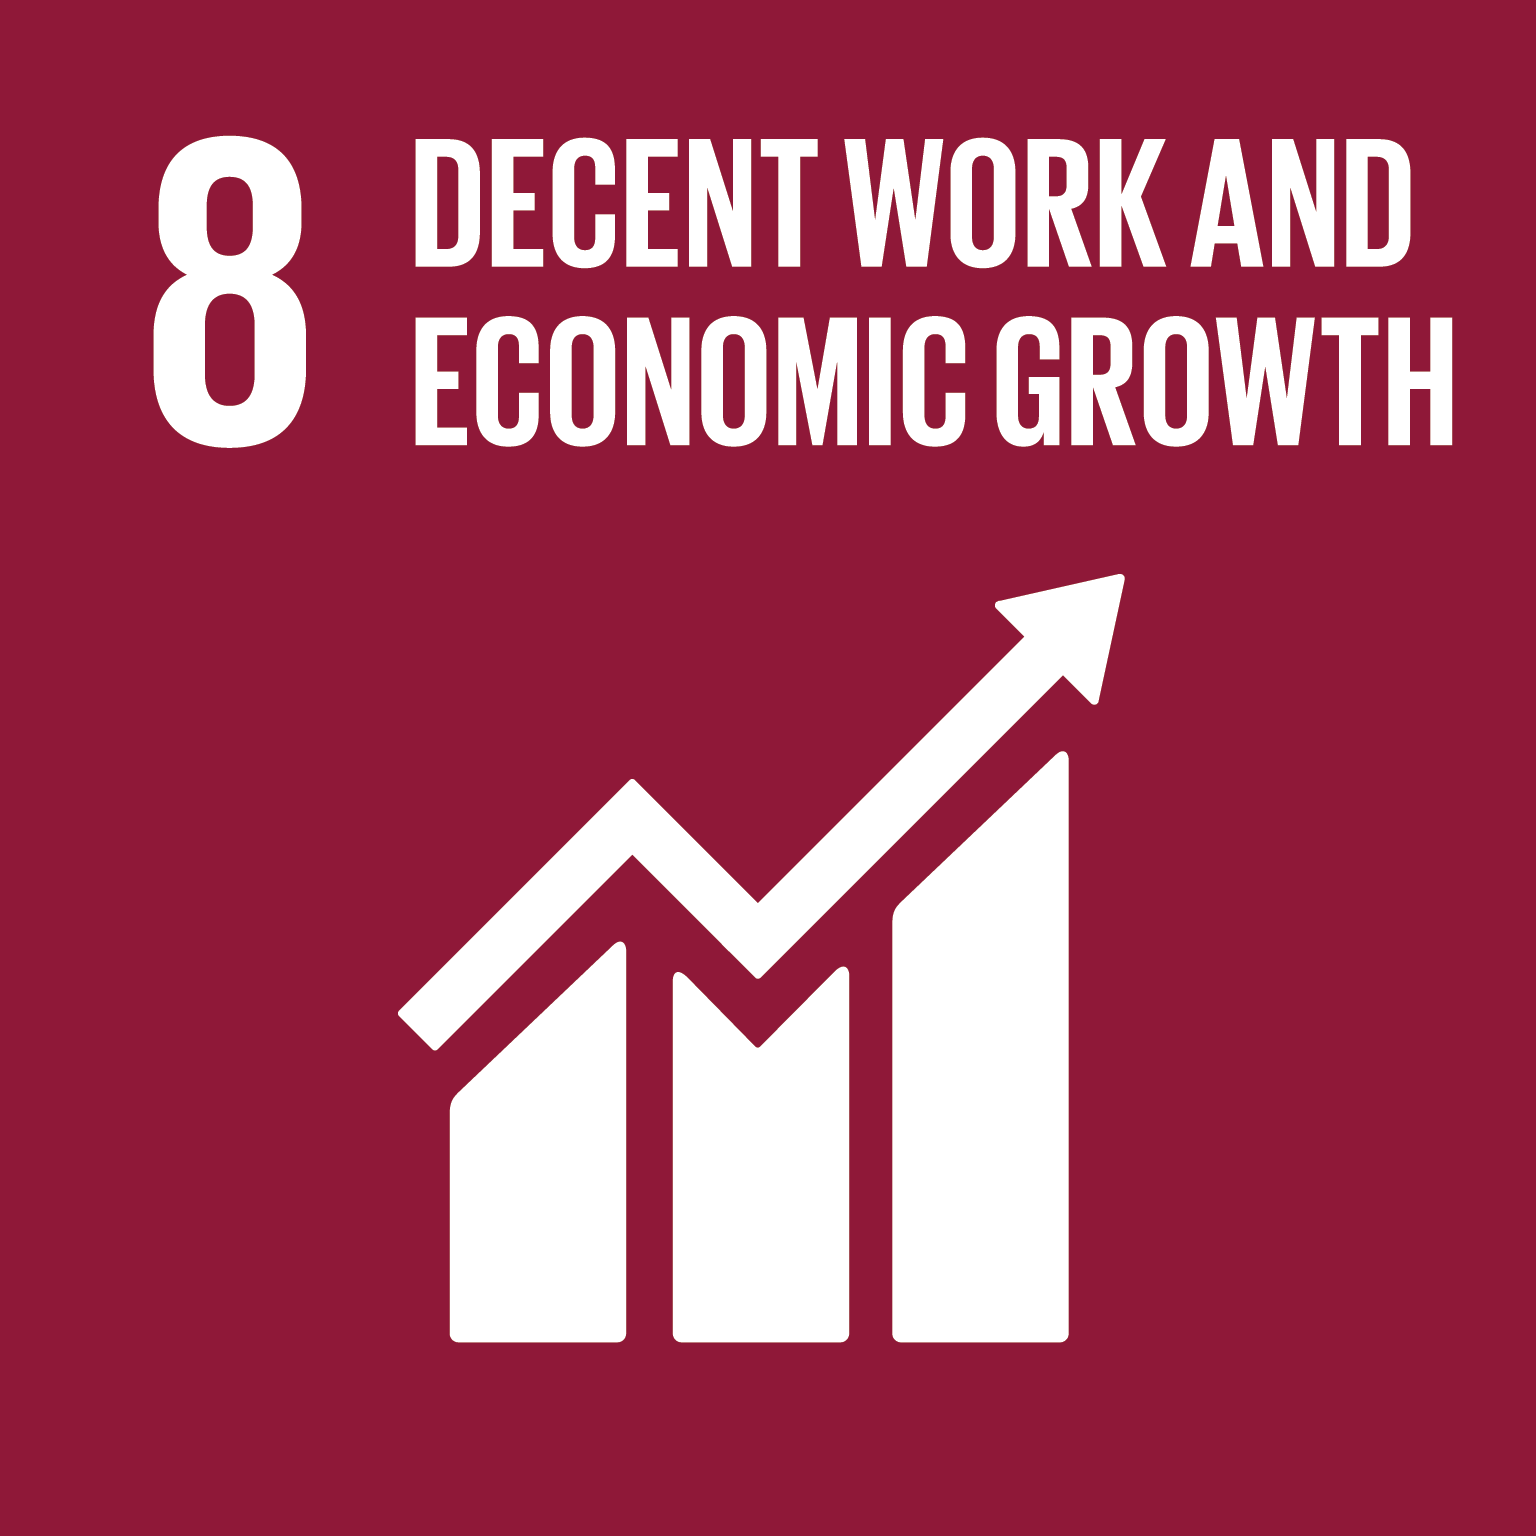 Decent Work and Economic Growth - Promote inclusive and sustainable economic growth, employment and decent work for all